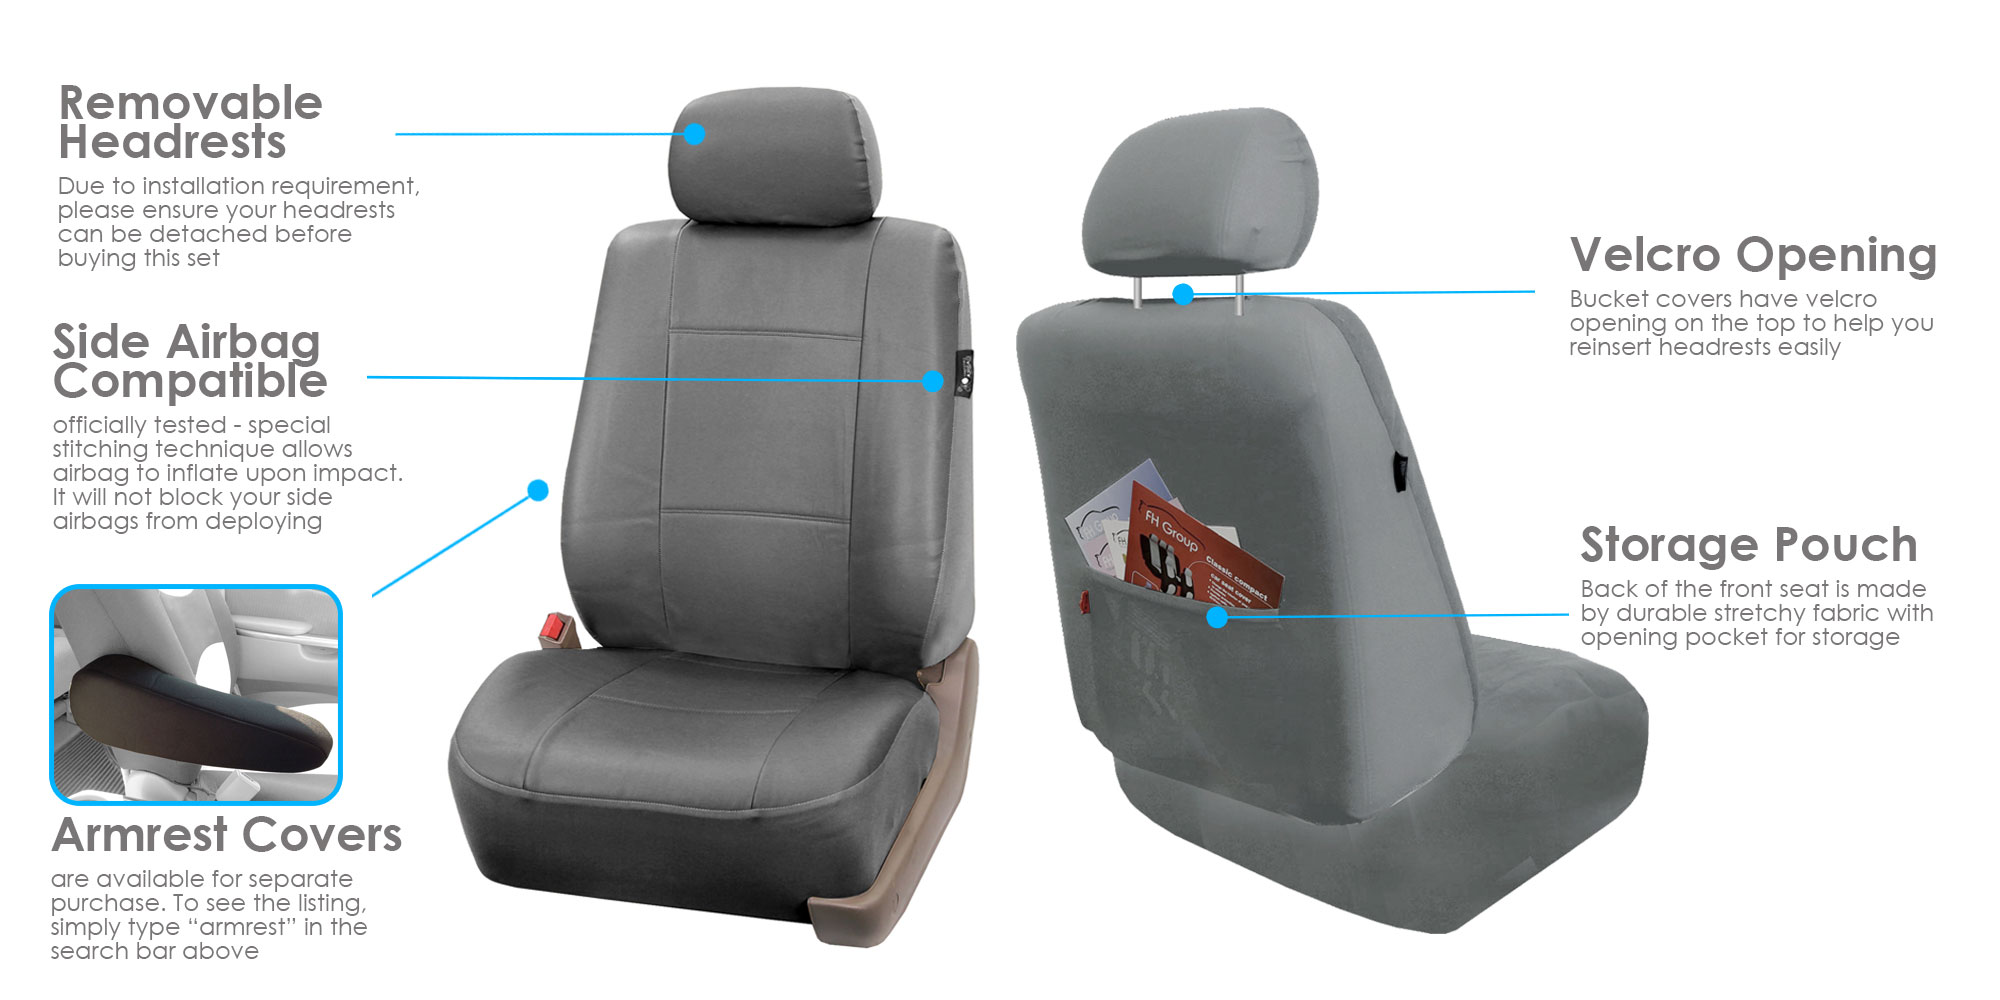 Pleasing Pu Leather Car Seat Covers W Floor Mats For Split Bench Unemploymentrelief Wooden Chair Designs For Living Room Unemploymentrelieforg